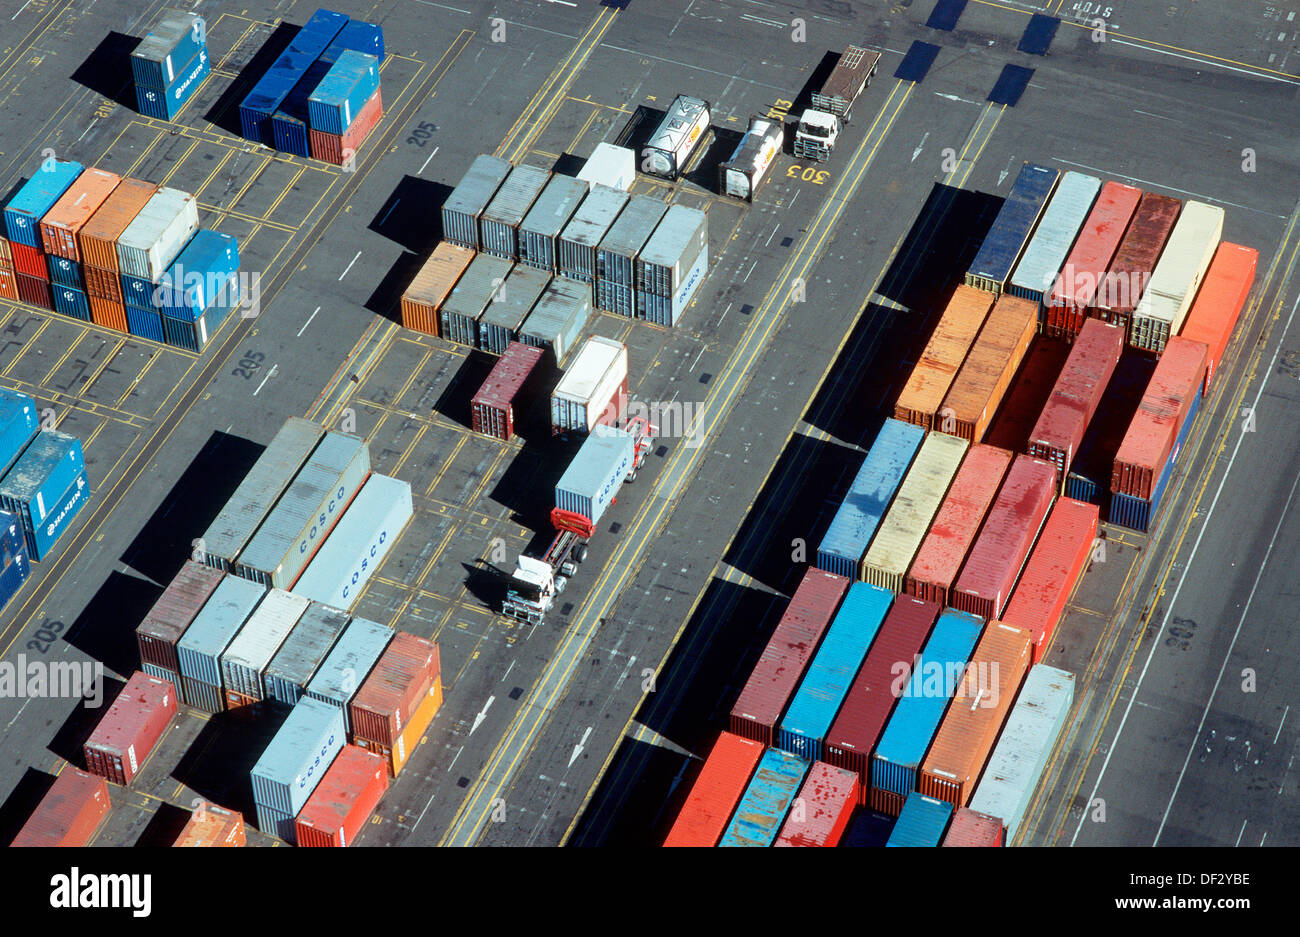 High Quality Aerial View Shipping Containers U0026 Truck In Storage Yard